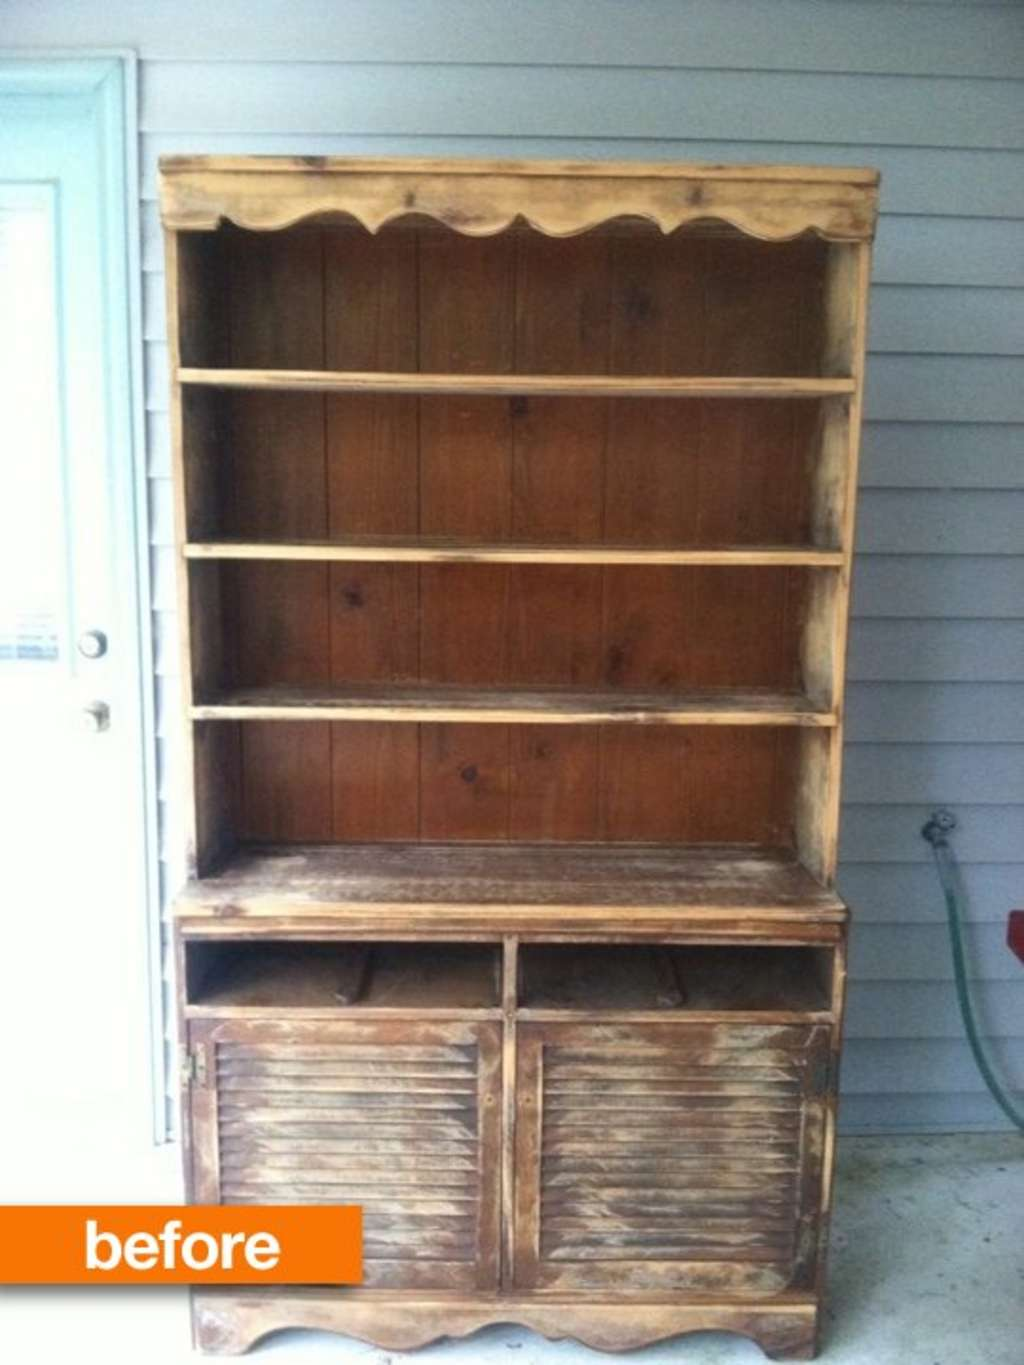 Before & After: A Crusty Cabinet Gets a Marine-Inspired Makeover